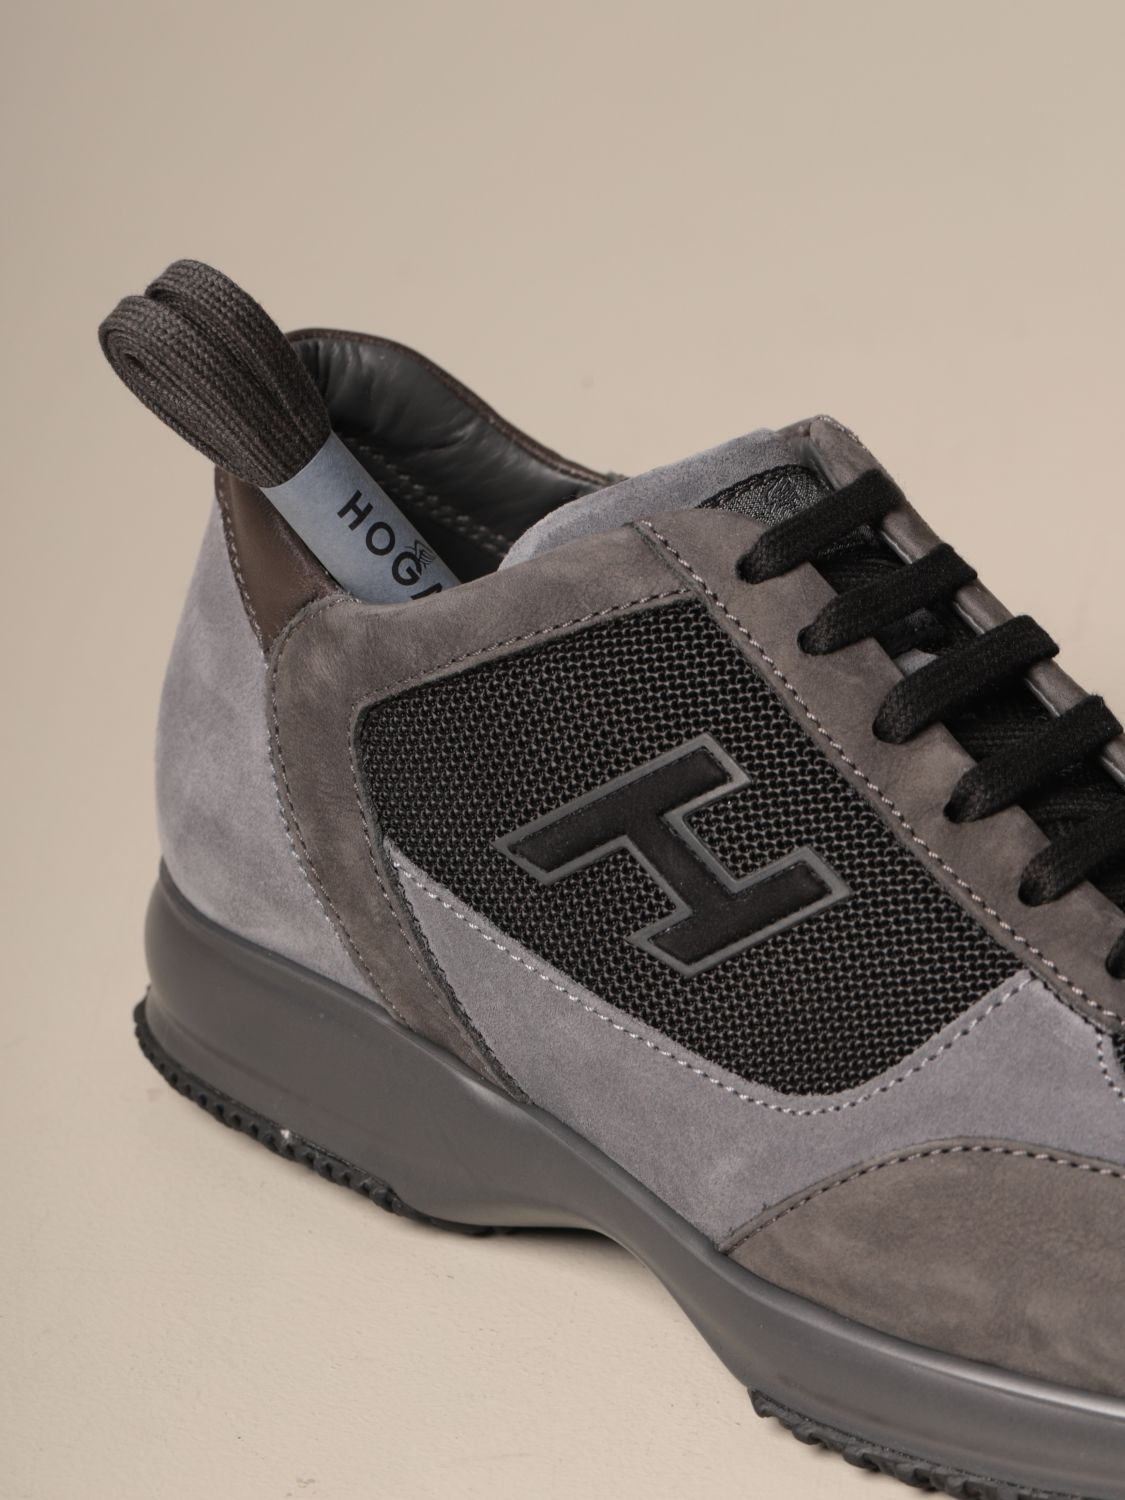 Interactive Hogan leather and mesh sneakers with H flock